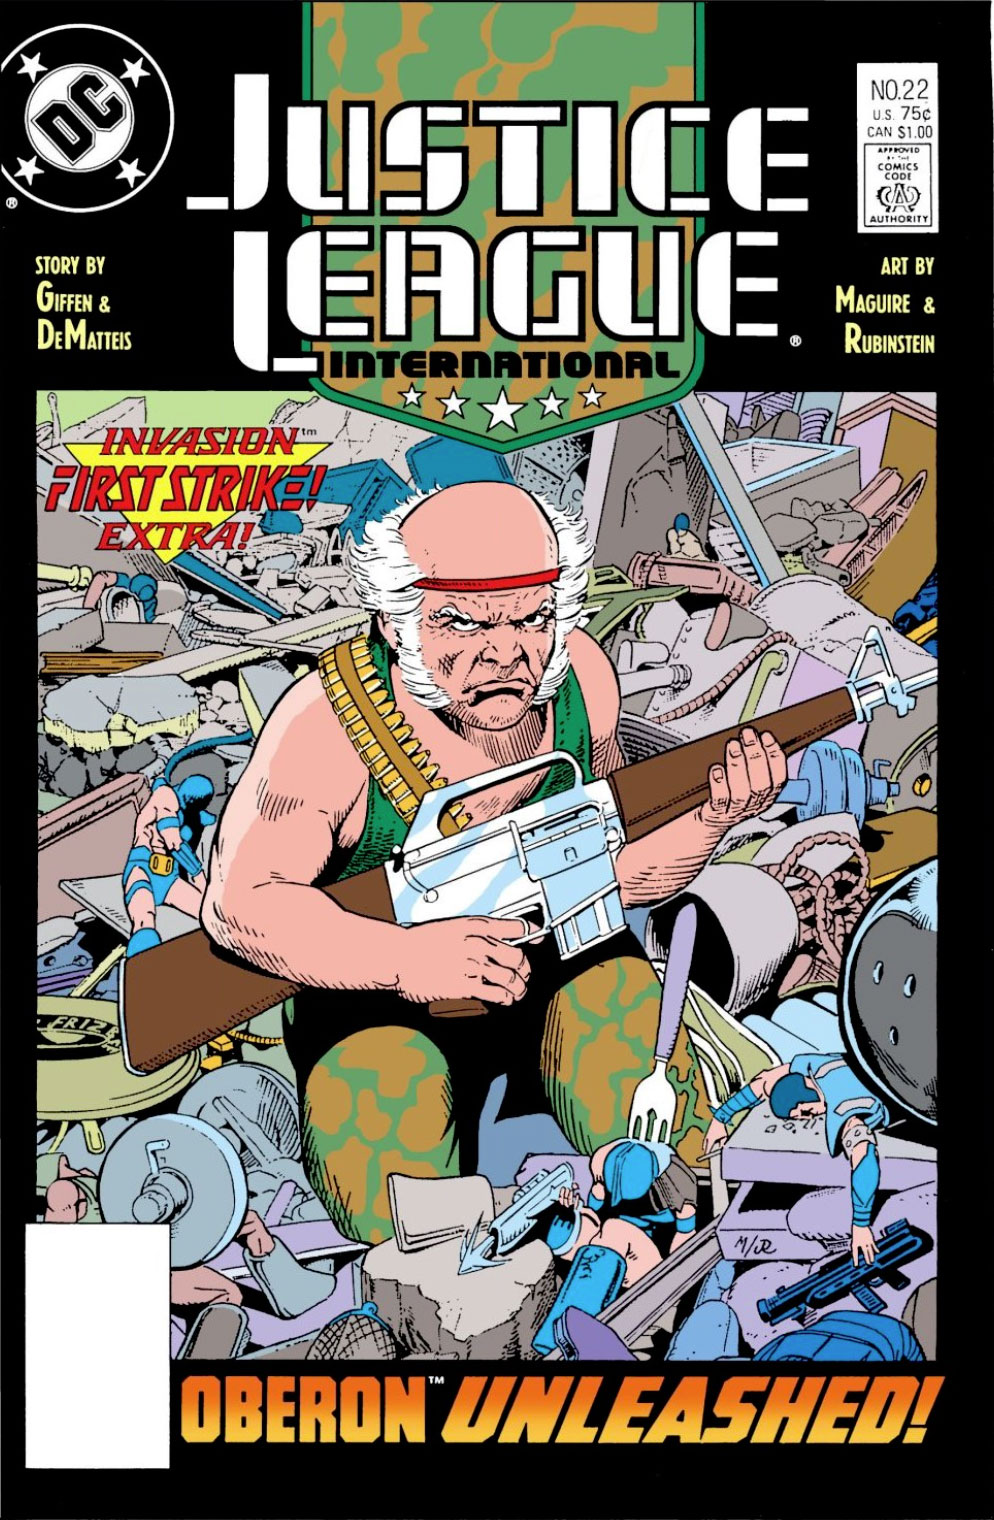 Justice League International #22 cover by Kevin Maguire and Joe Rubinstein